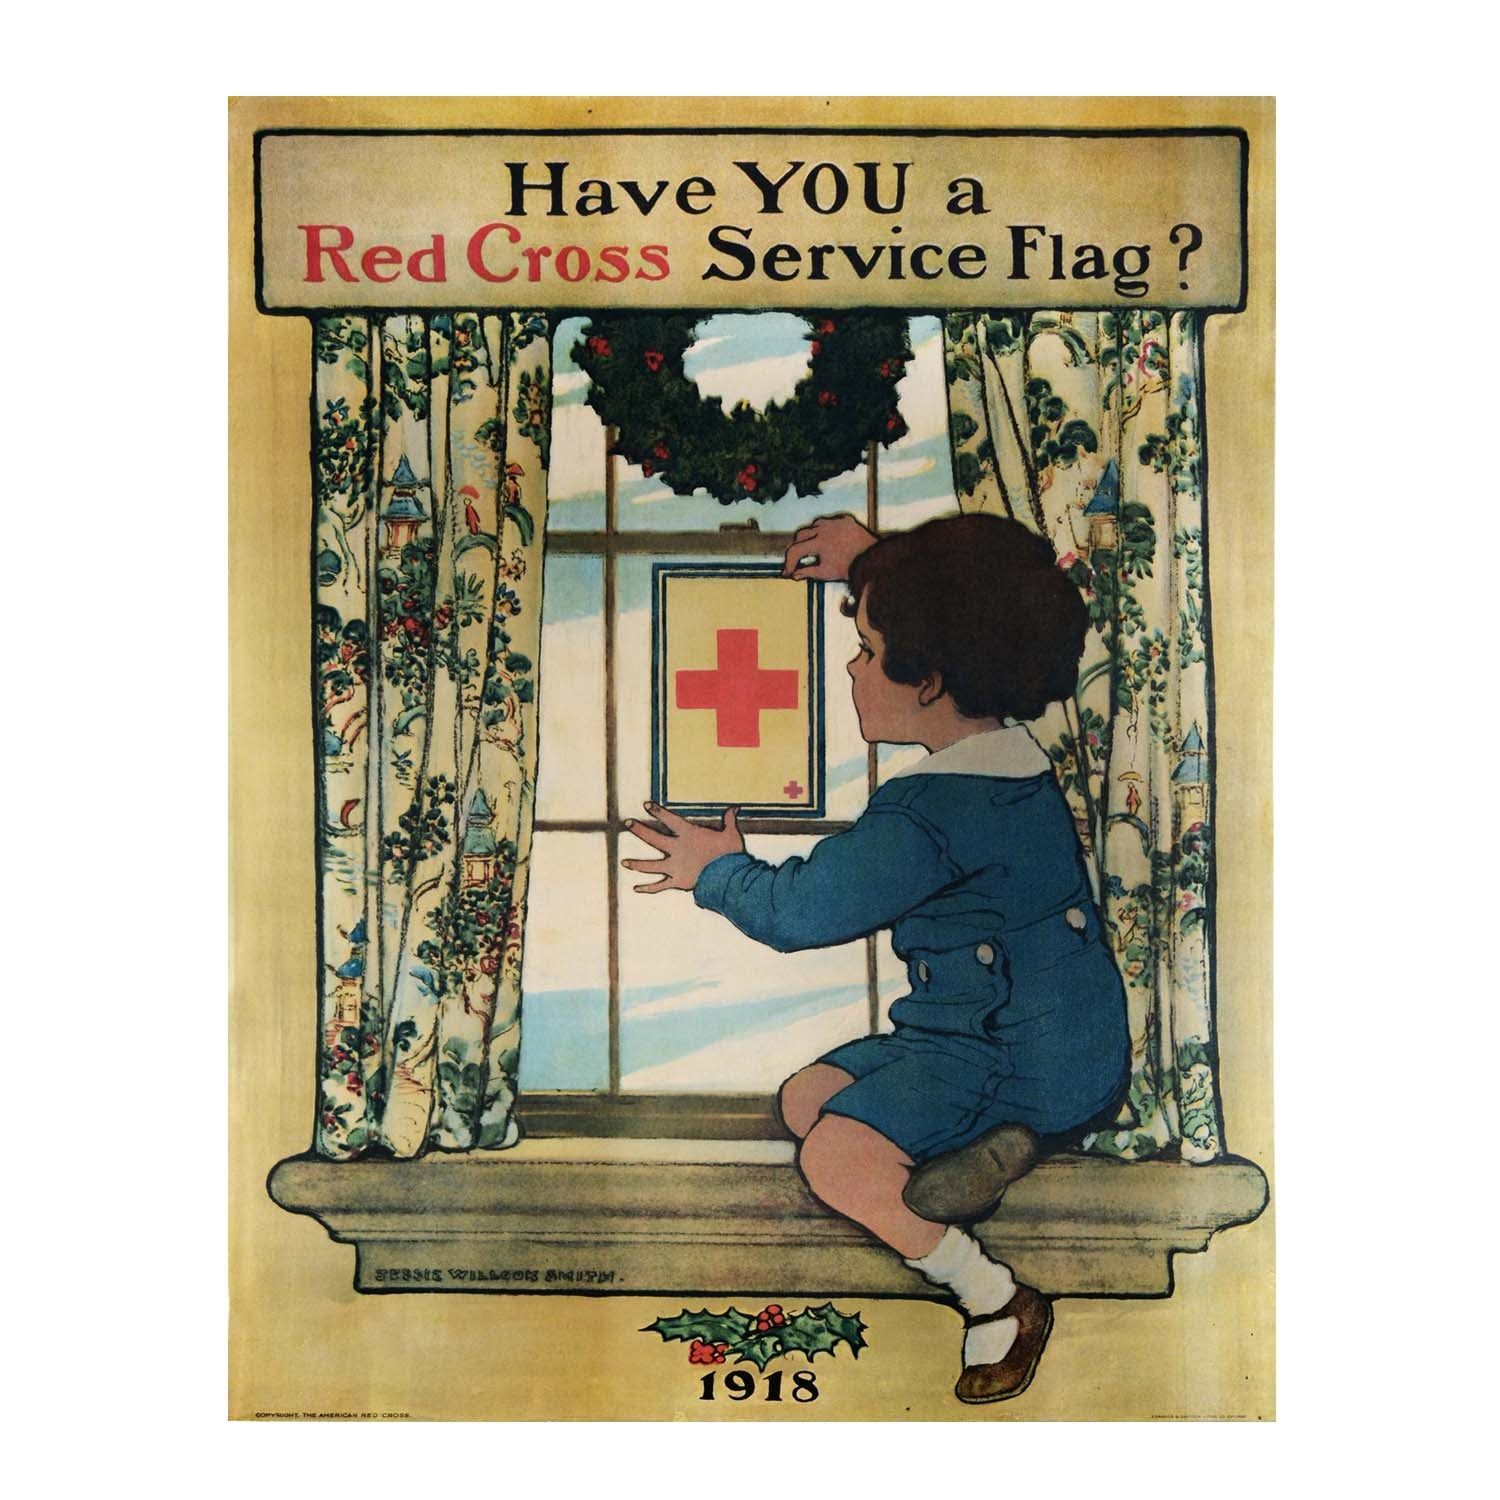 Original Jessie Willcox Smith Red Cross poster